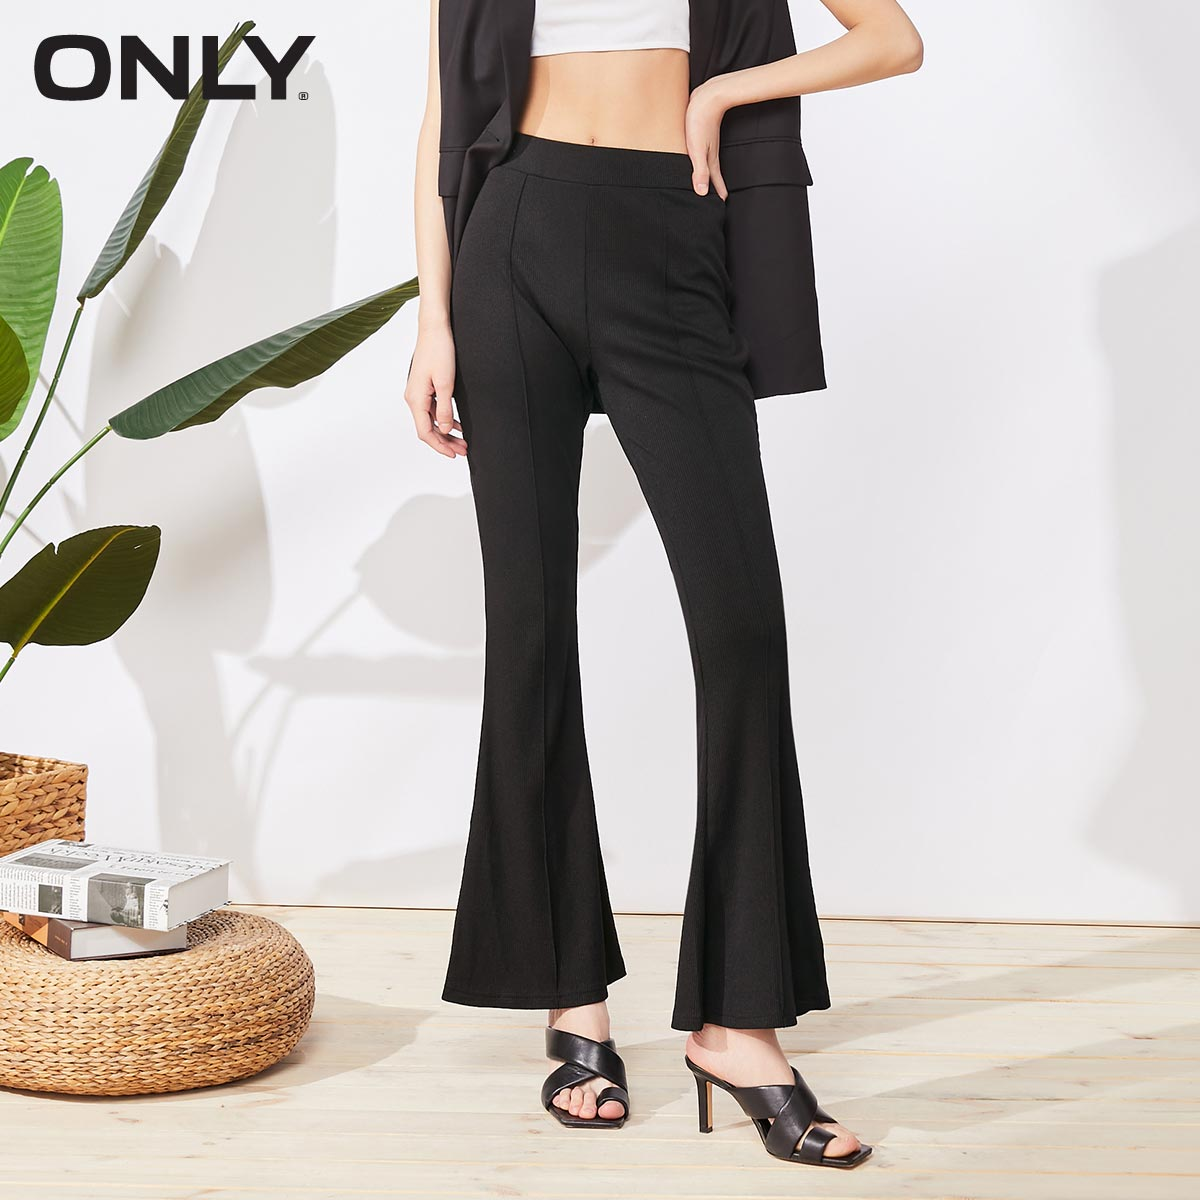 Only2020 summer new slim fit commuter casual pants female 120374001